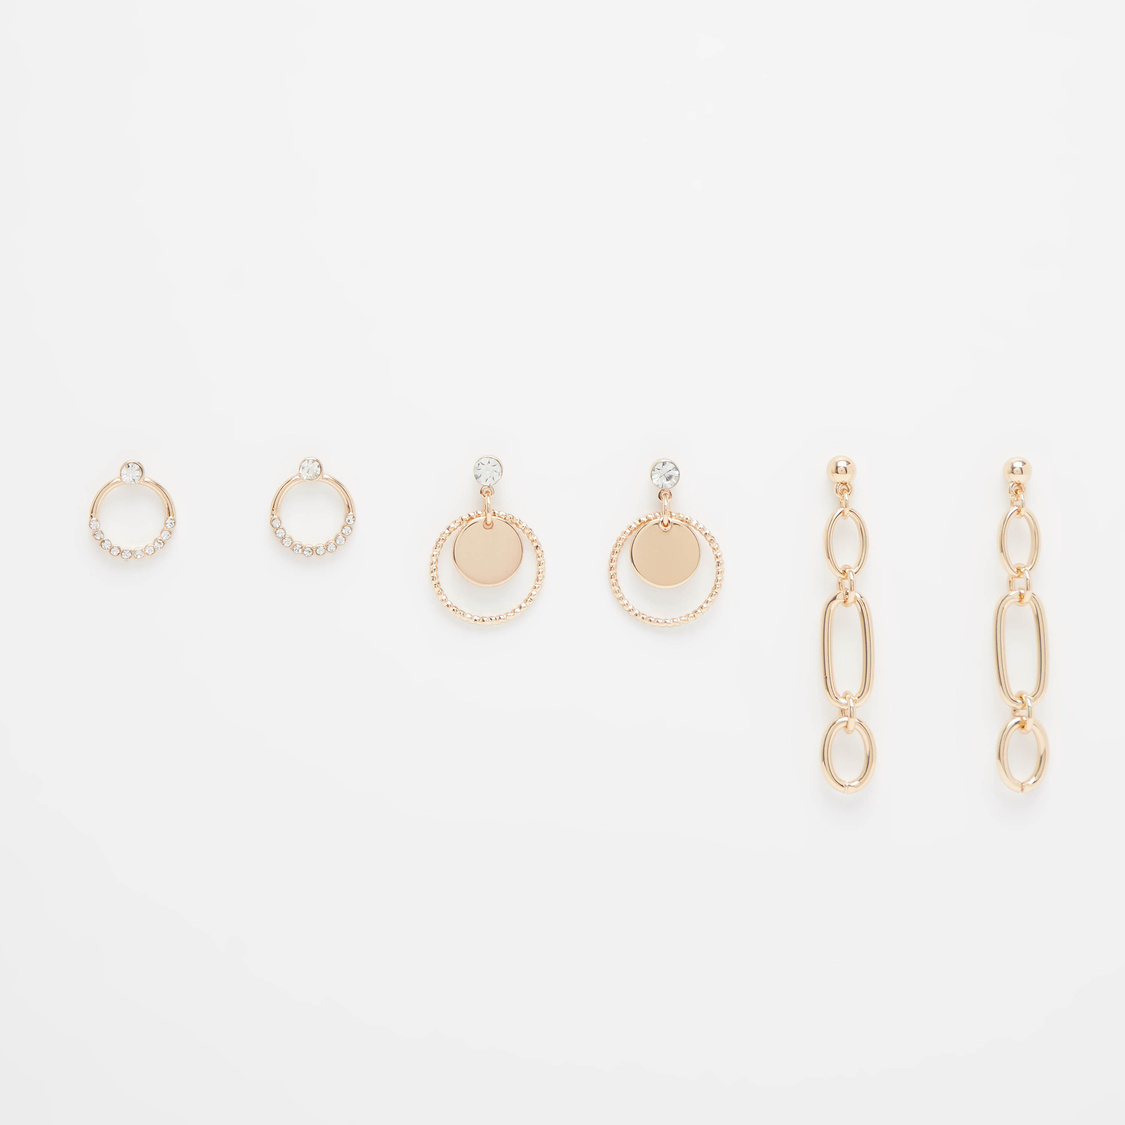 Set of 3 - Stud Detail Earrings with Pushback Closure